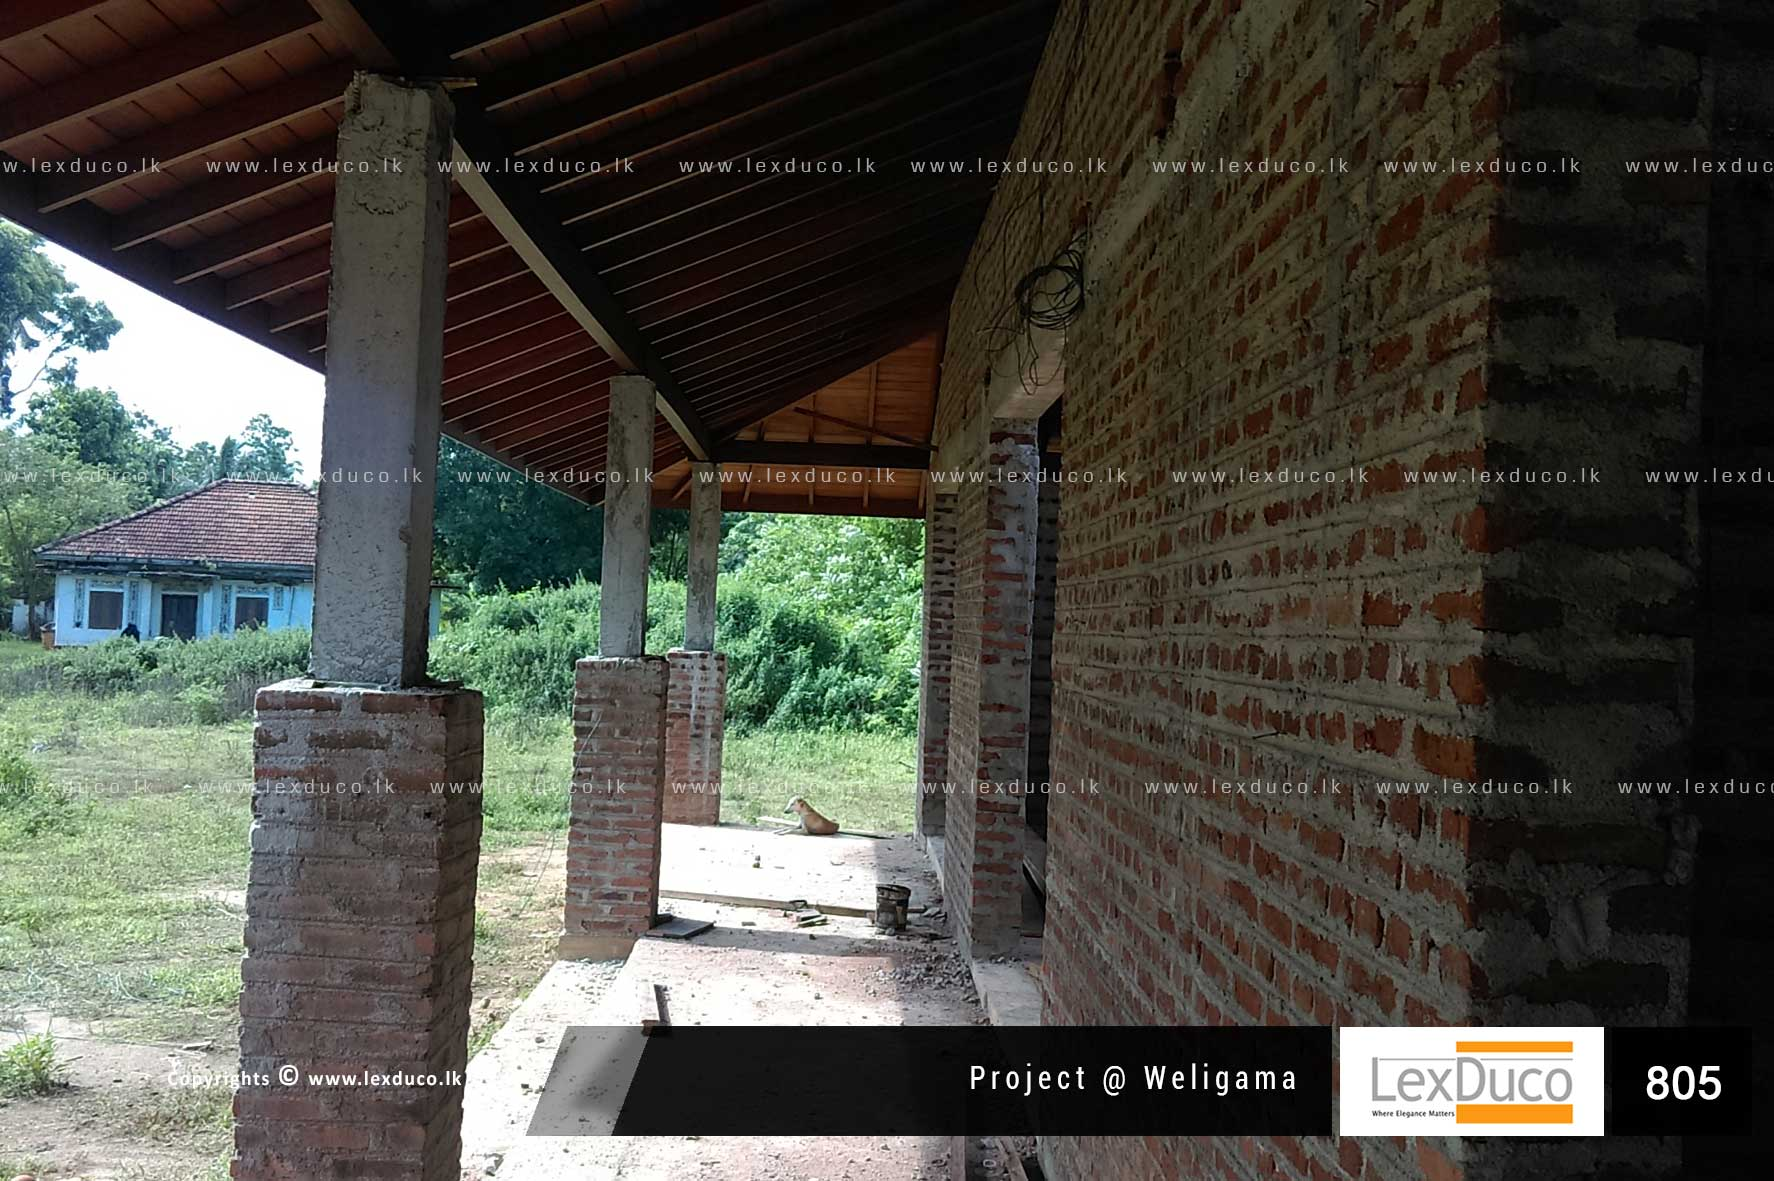 Residential Housing Project at Weligama  | Lex Duco